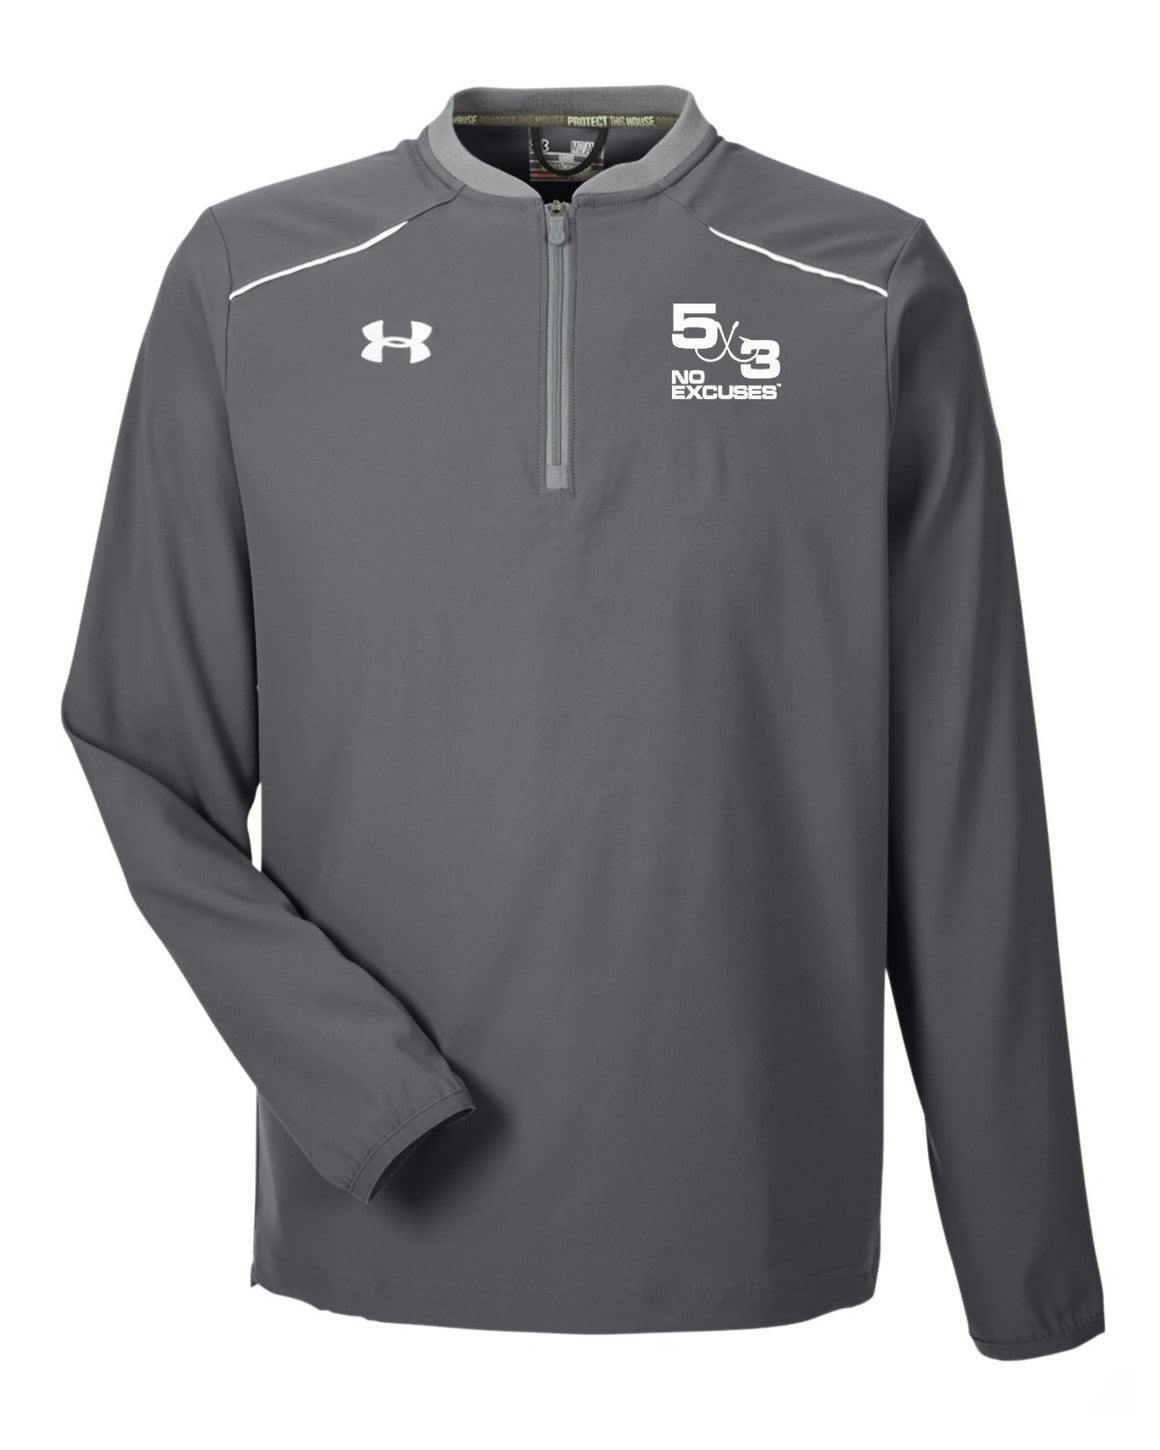 5X3 Under Armour Windshirt (preorder)